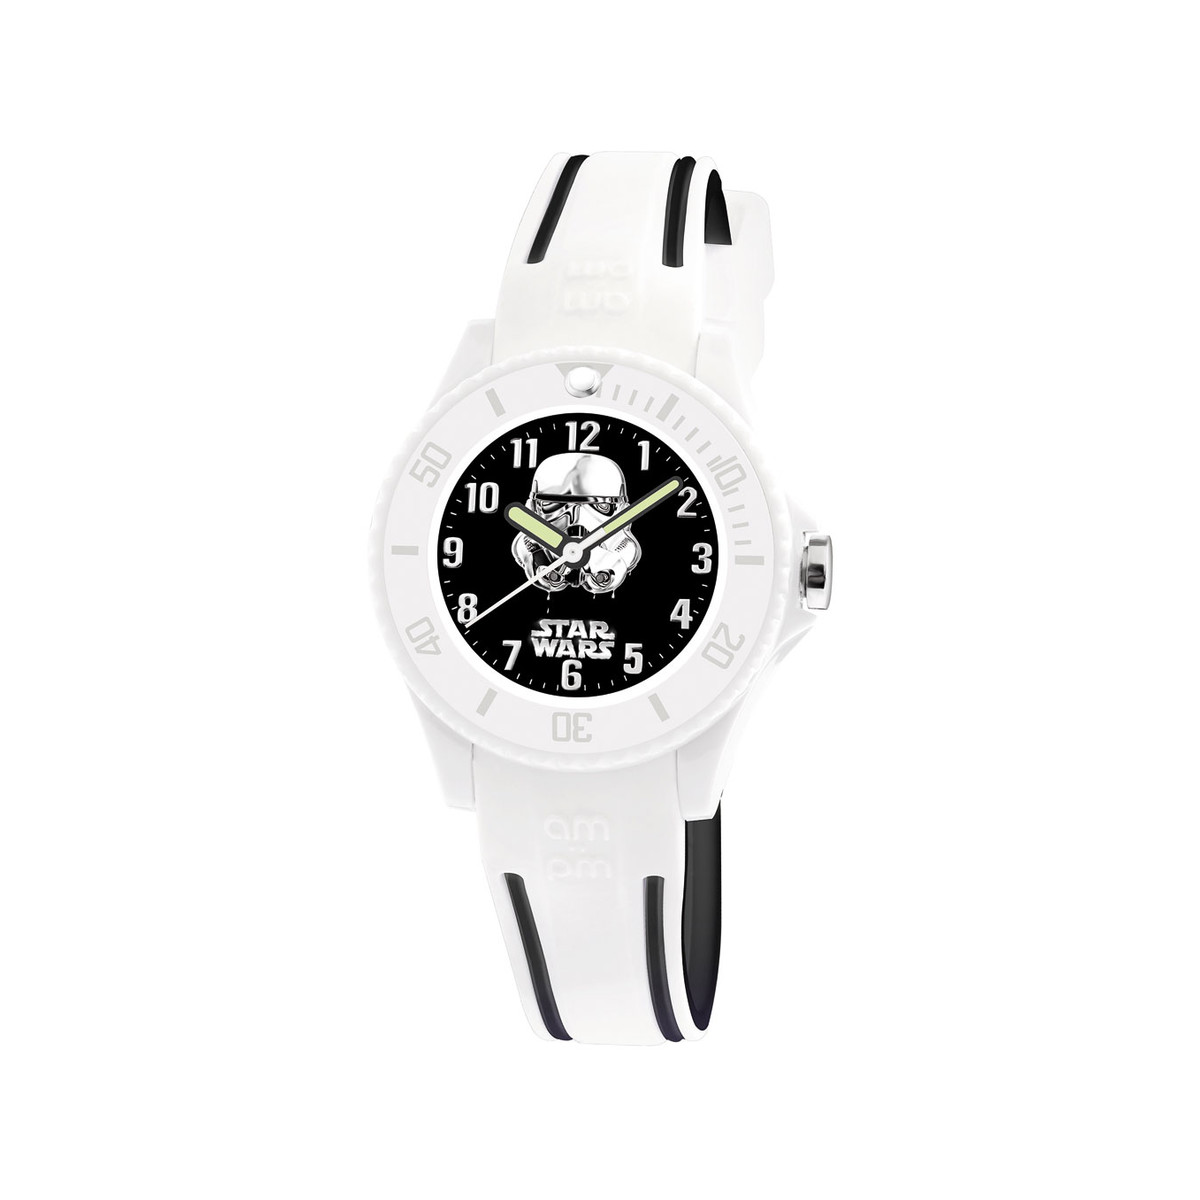 Montre AM:PM Star Wars enfant plastique